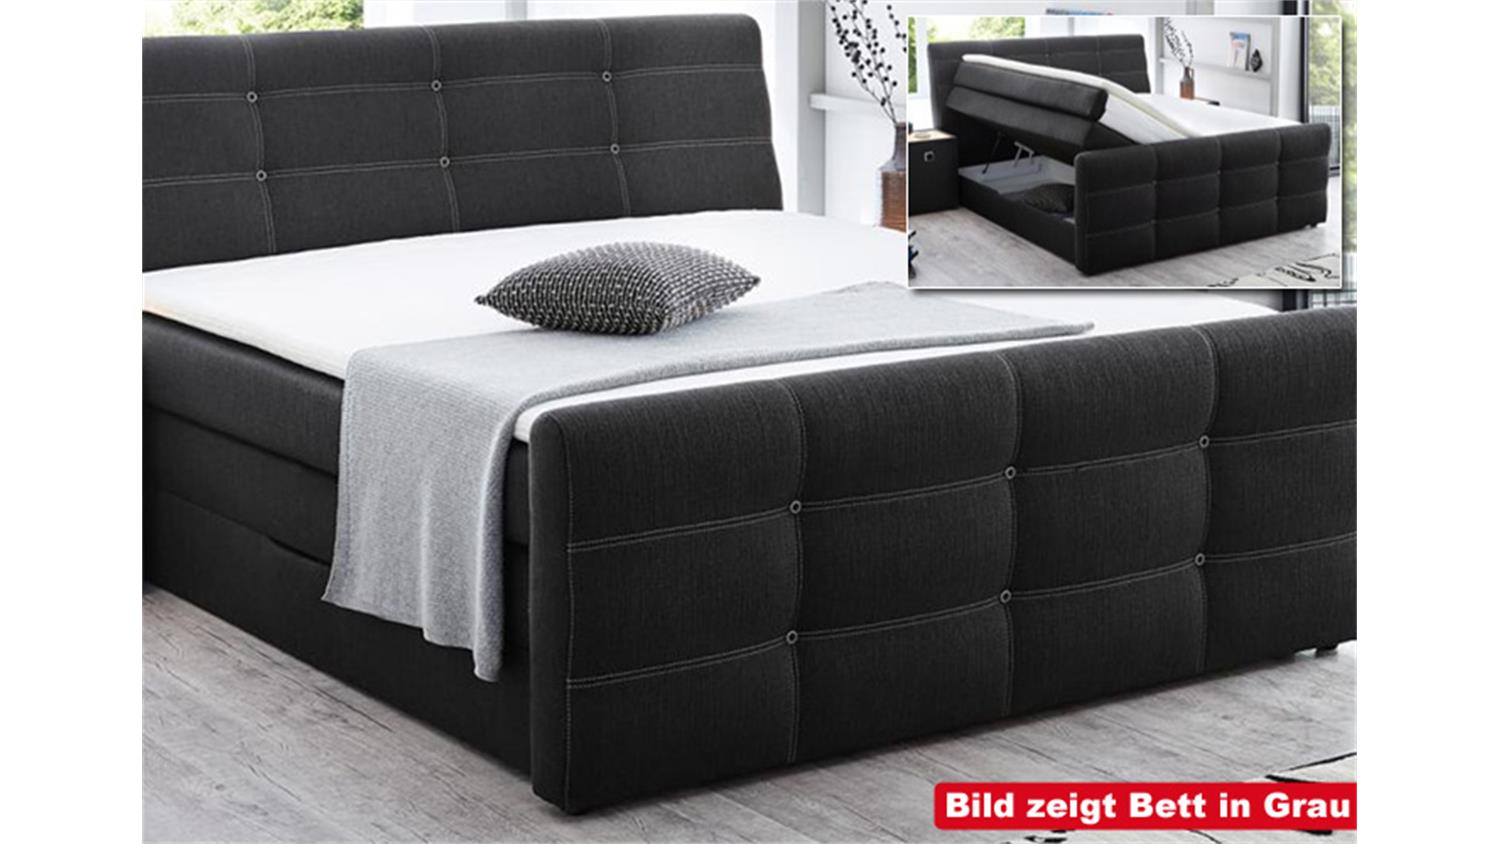 boxspringbett grande cappuccino 180x200 cm produktvideo. Black Bedroom Furniture Sets. Home Design Ideas